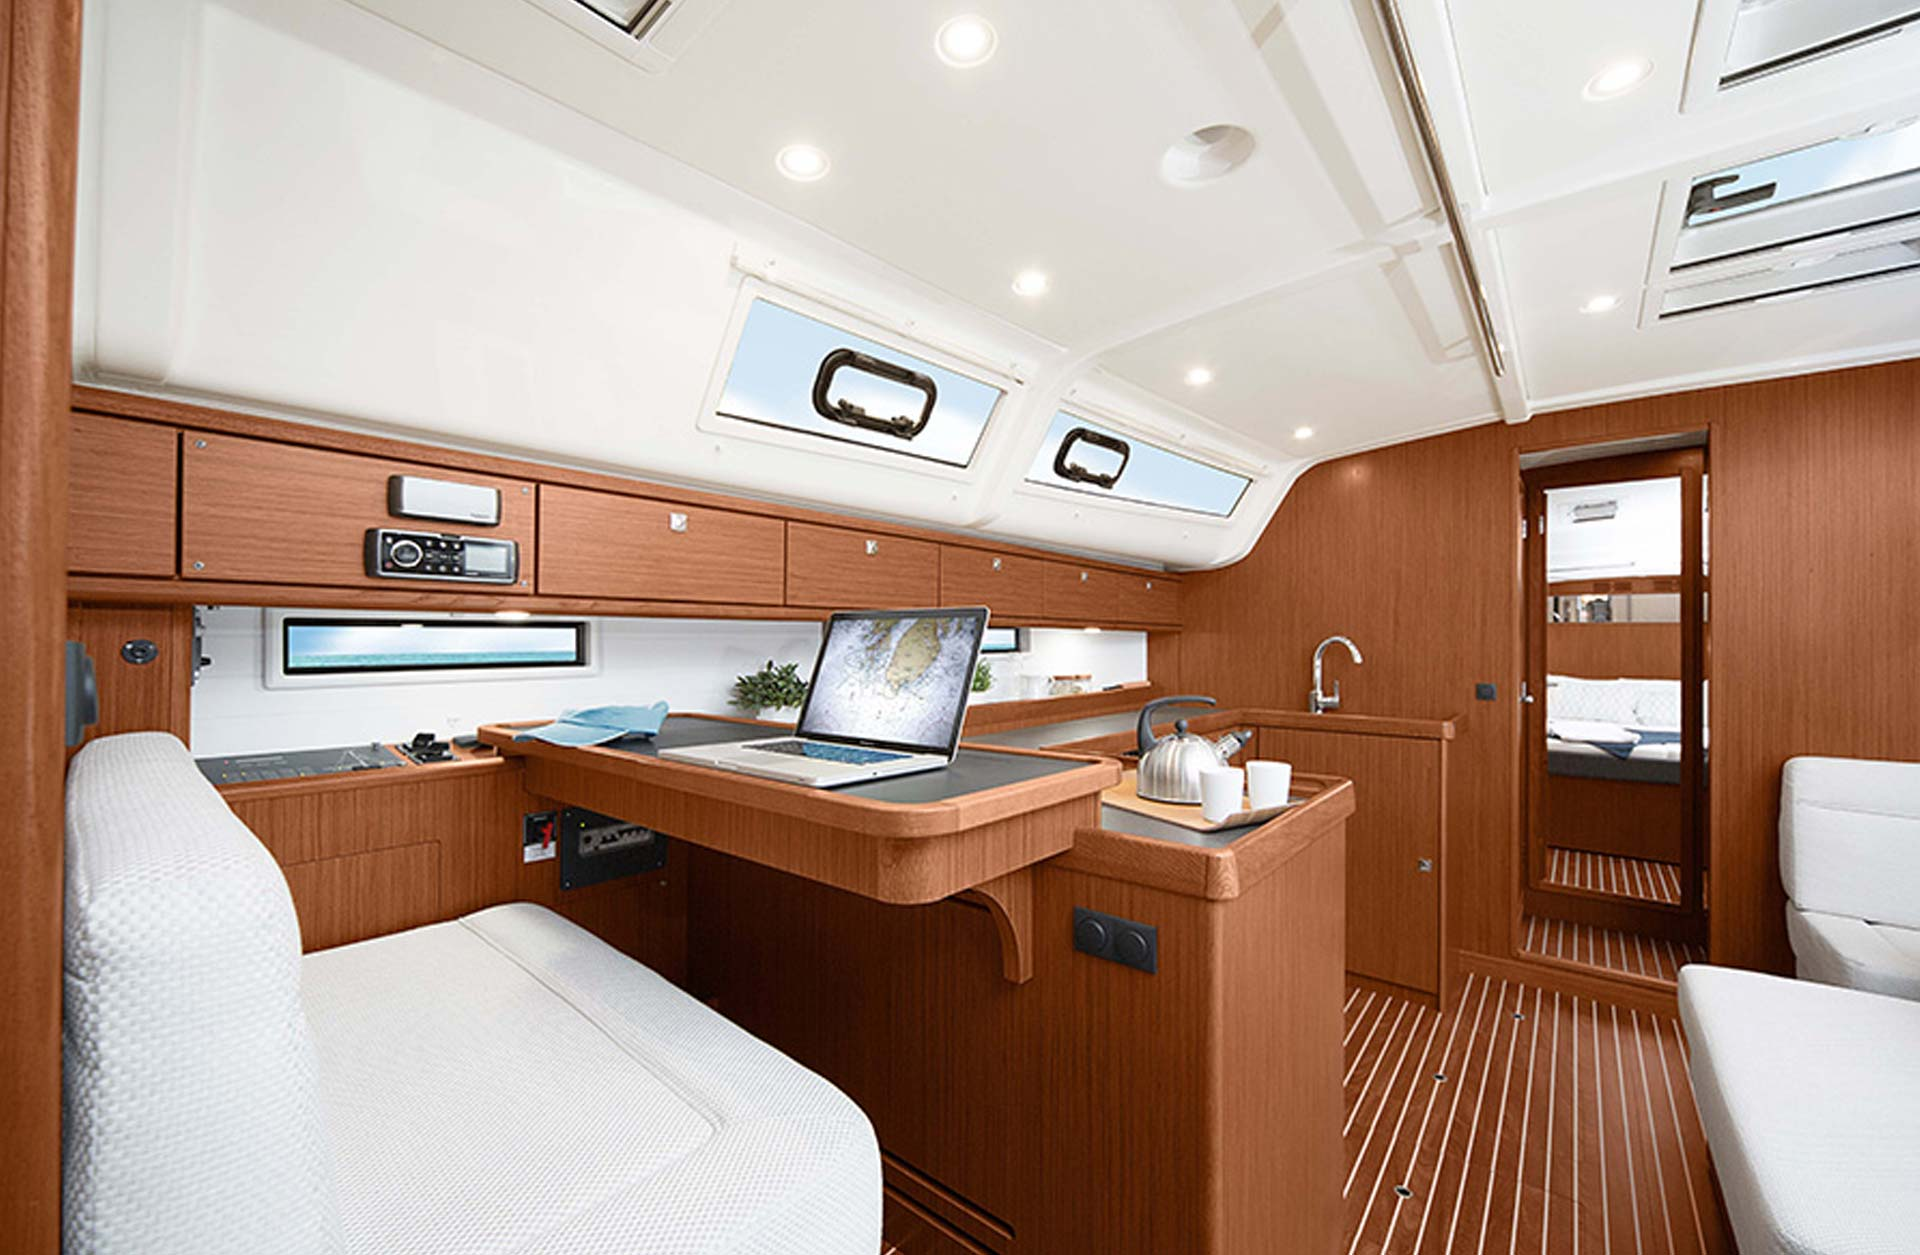 Bavaria 51 Cruiser - Interior